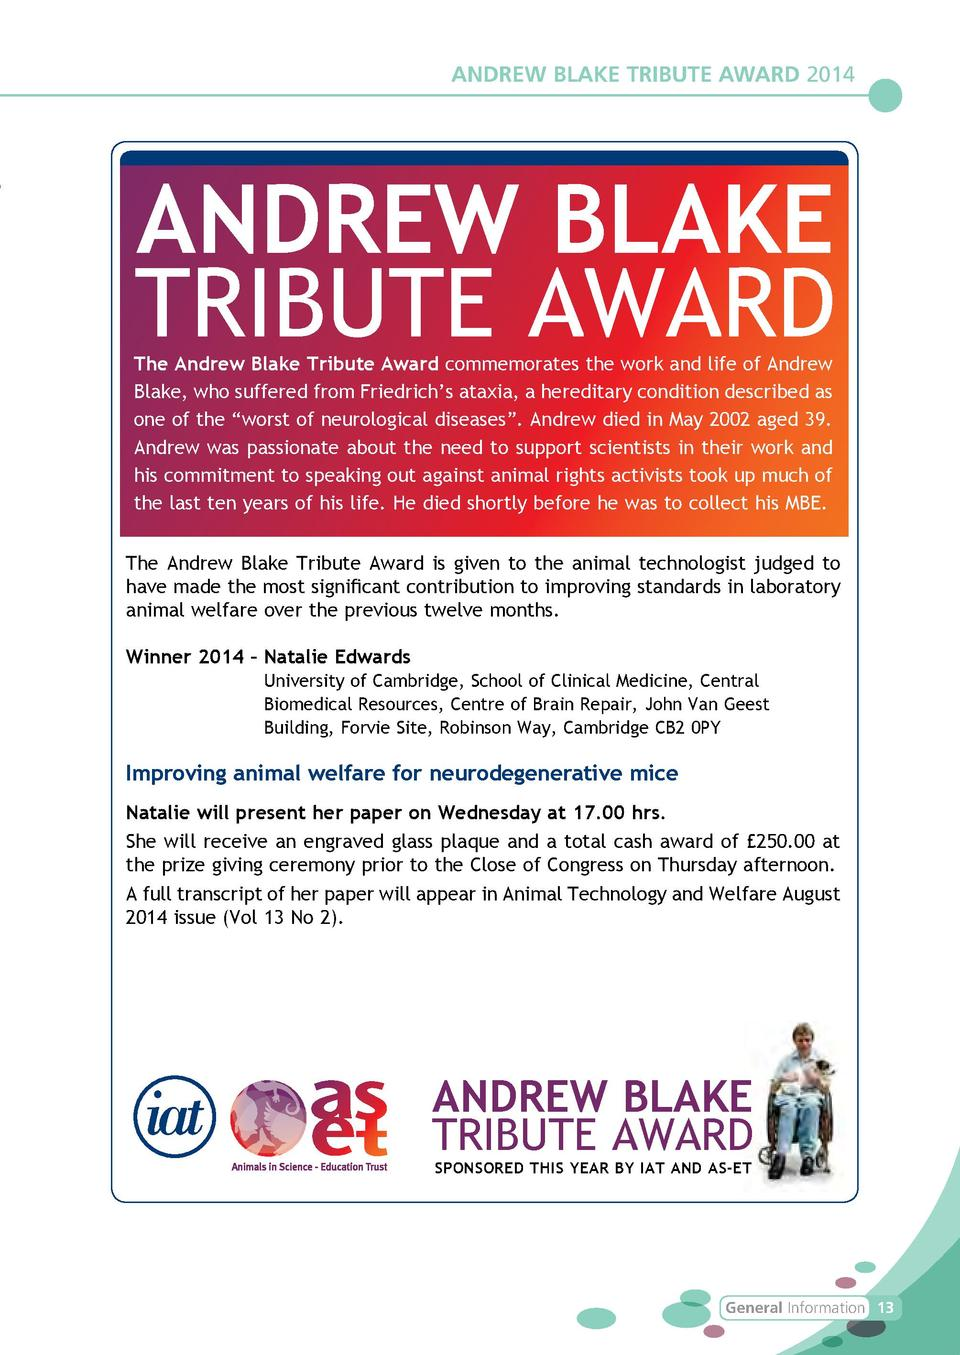 ANDREW BLAKE TRIBUTE AWARD 2014  ANDREW BLAKE TRIBUTE AWARD  The Andrew Blake Tribute Award commemorates the work and life...